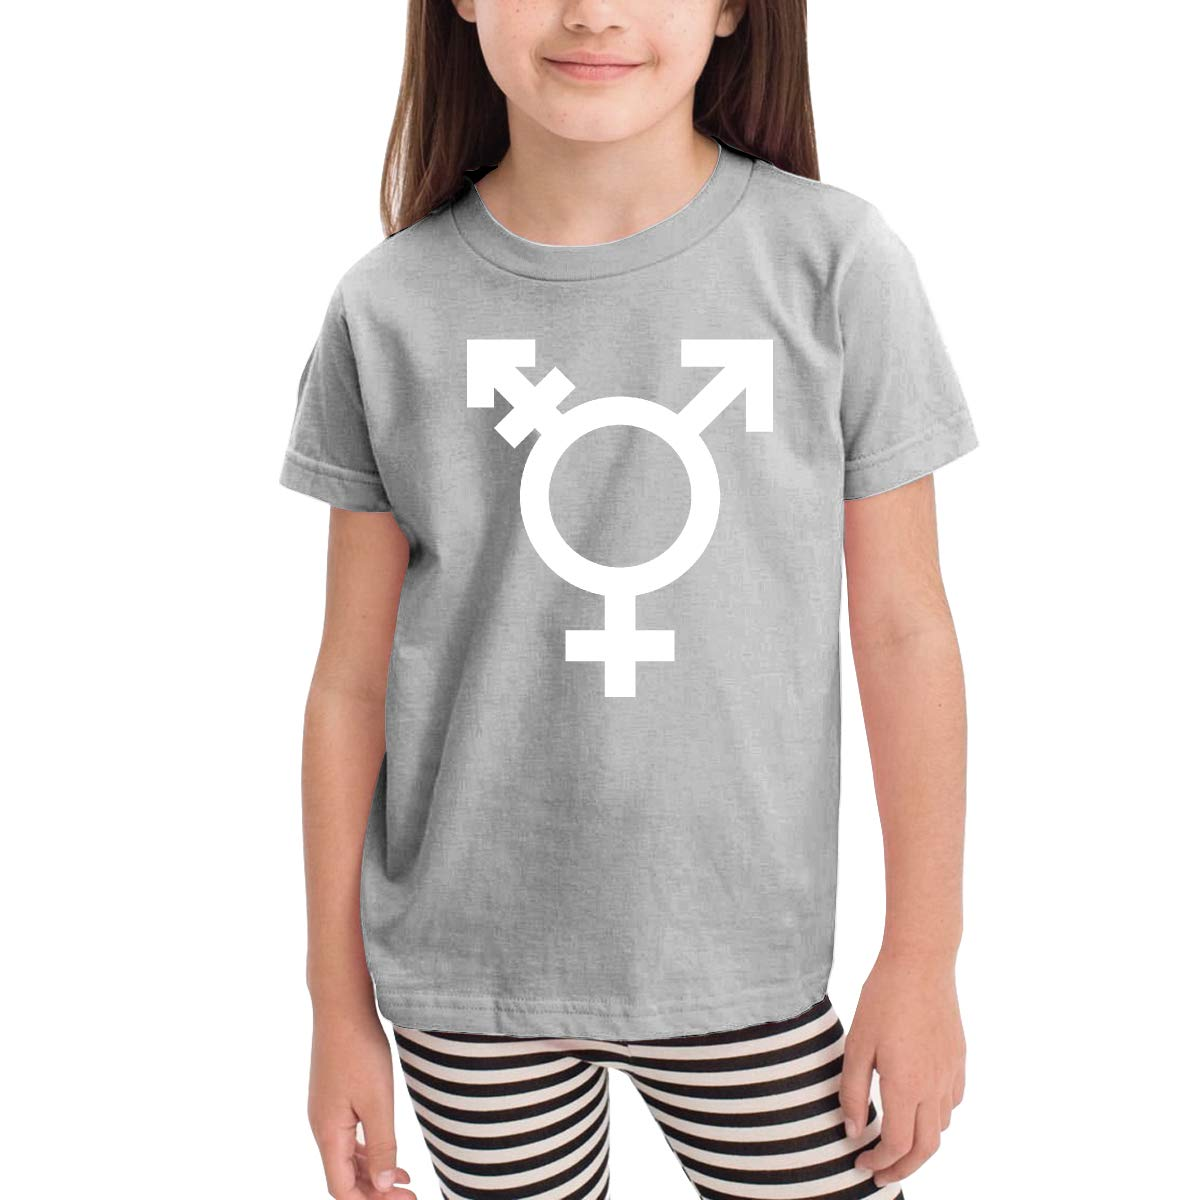 Kids T-Shirt Tops Black Transgender Symbol Unisex Youths Short Sleeve T-Shirt